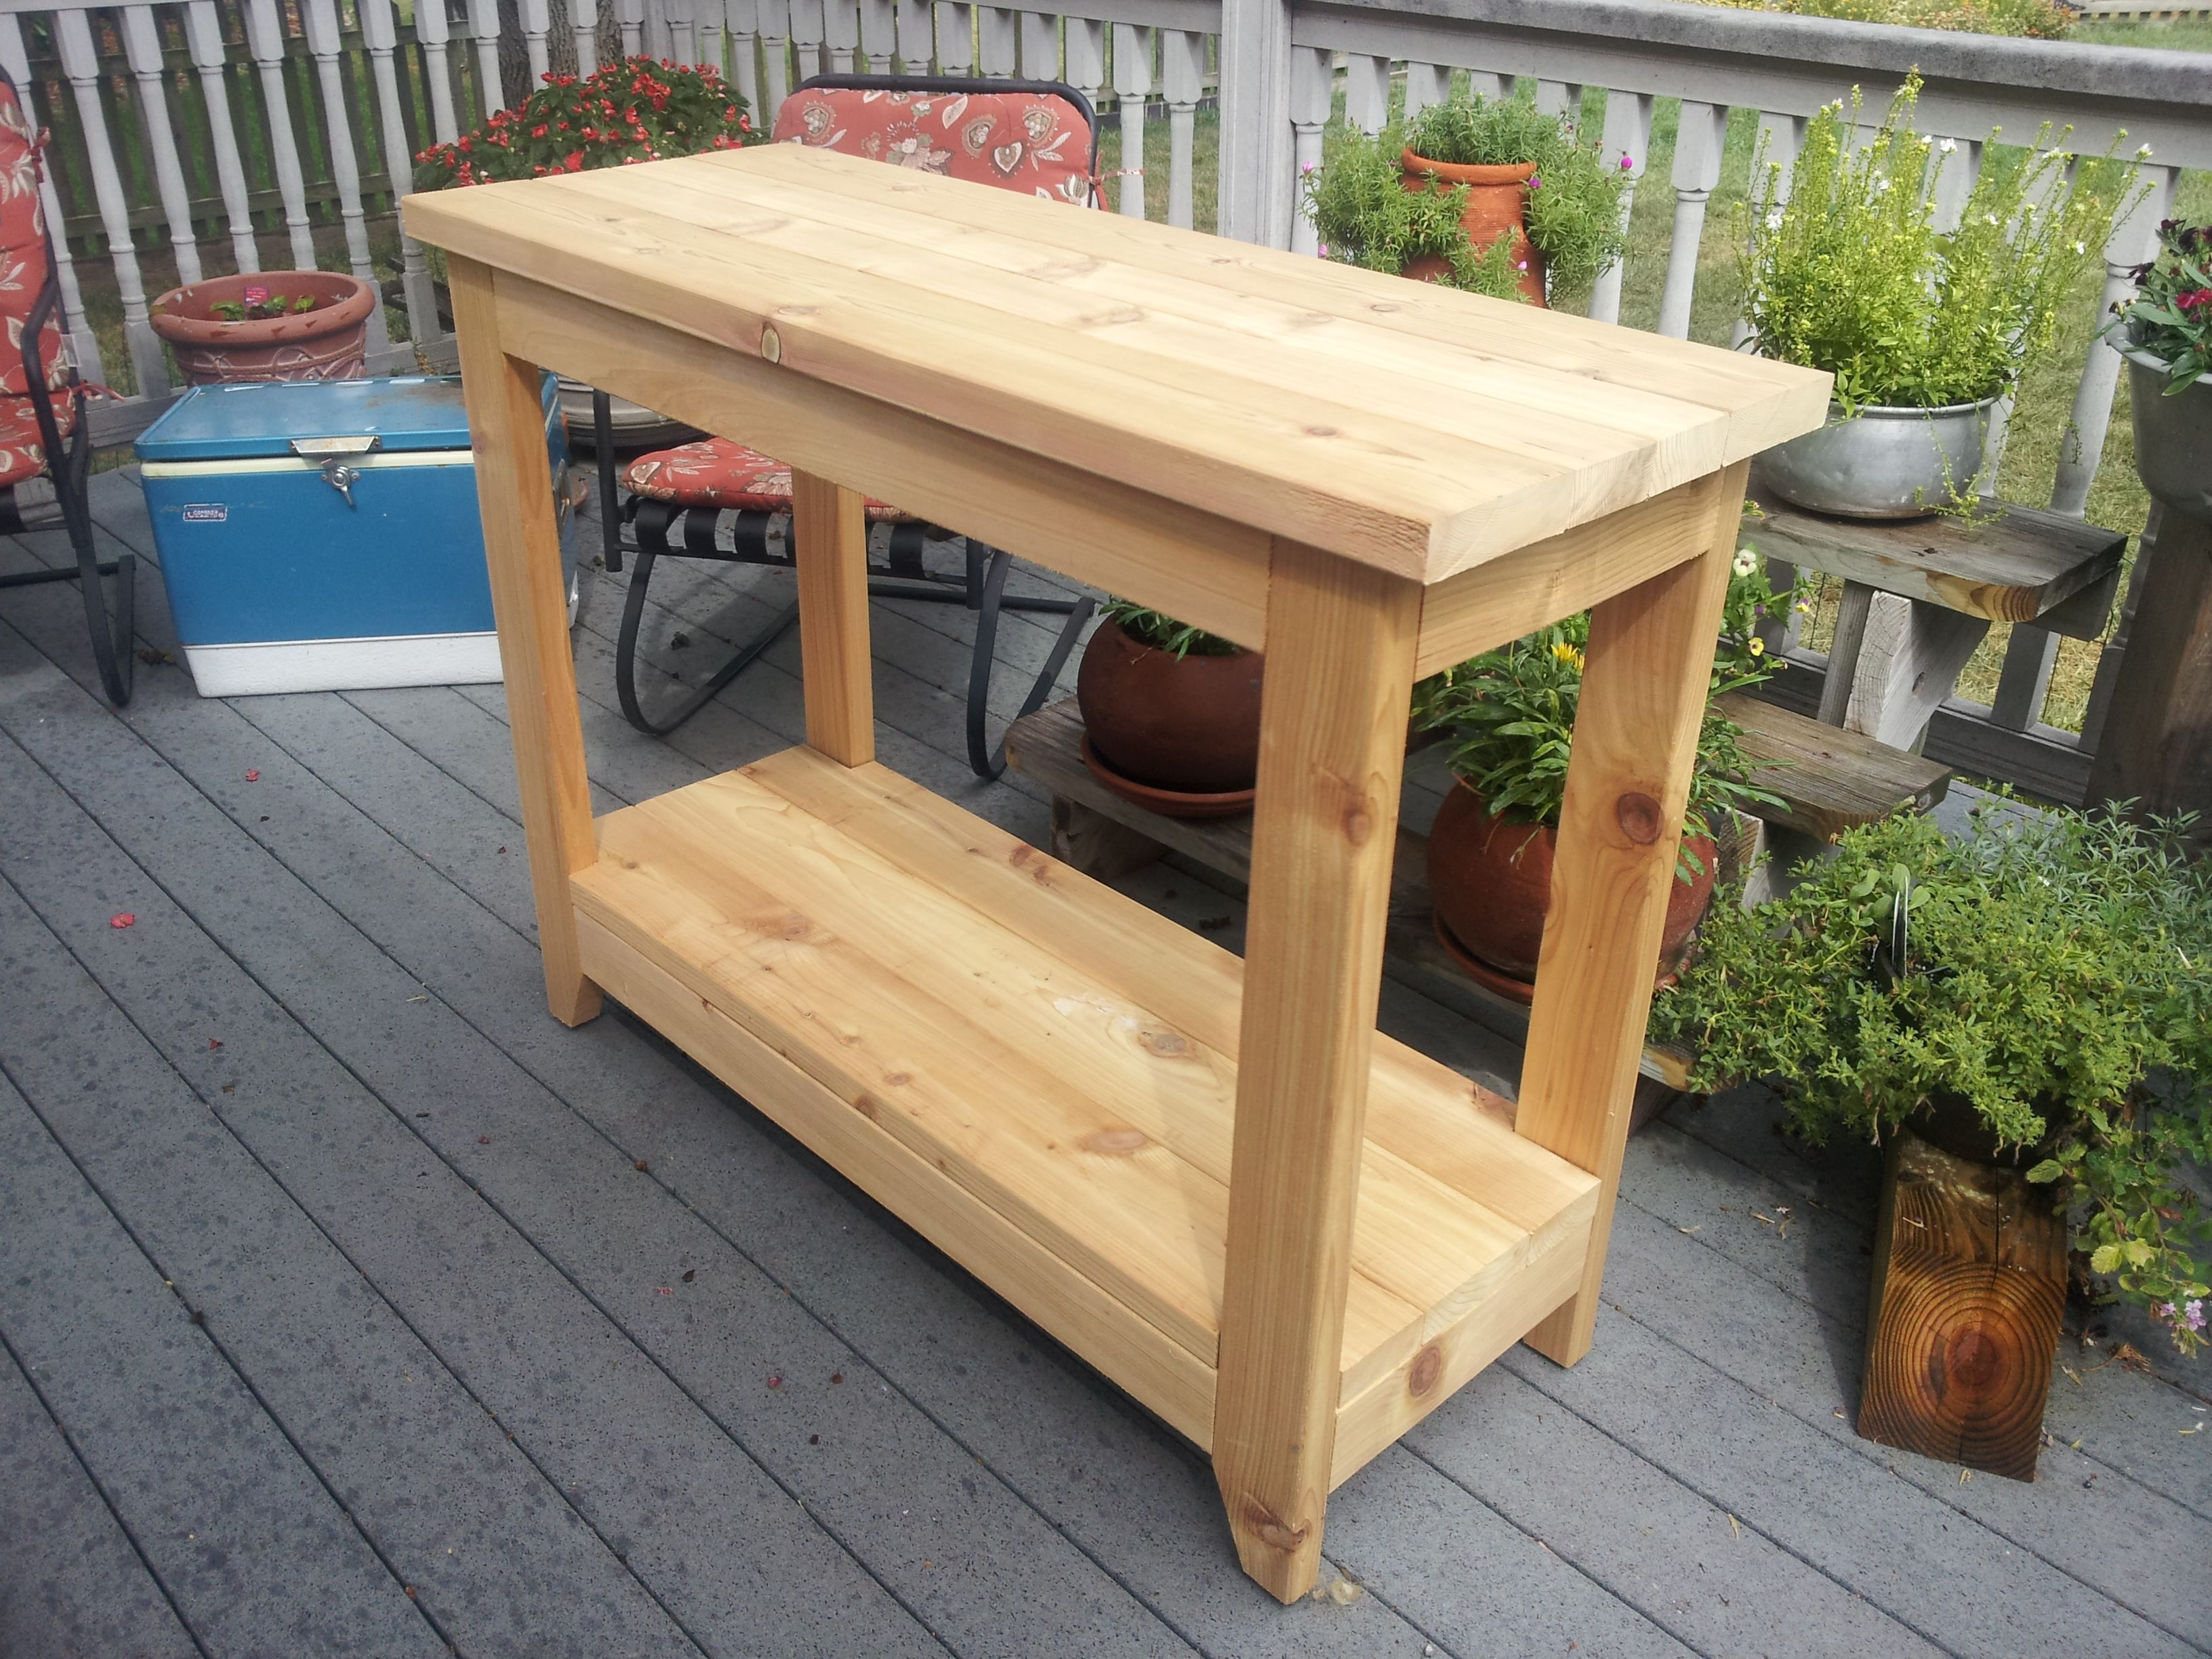 Workbench Plans 2x4 2x6 Pdf Woodworking Workbench Plans Workbench Woodworking Workbench